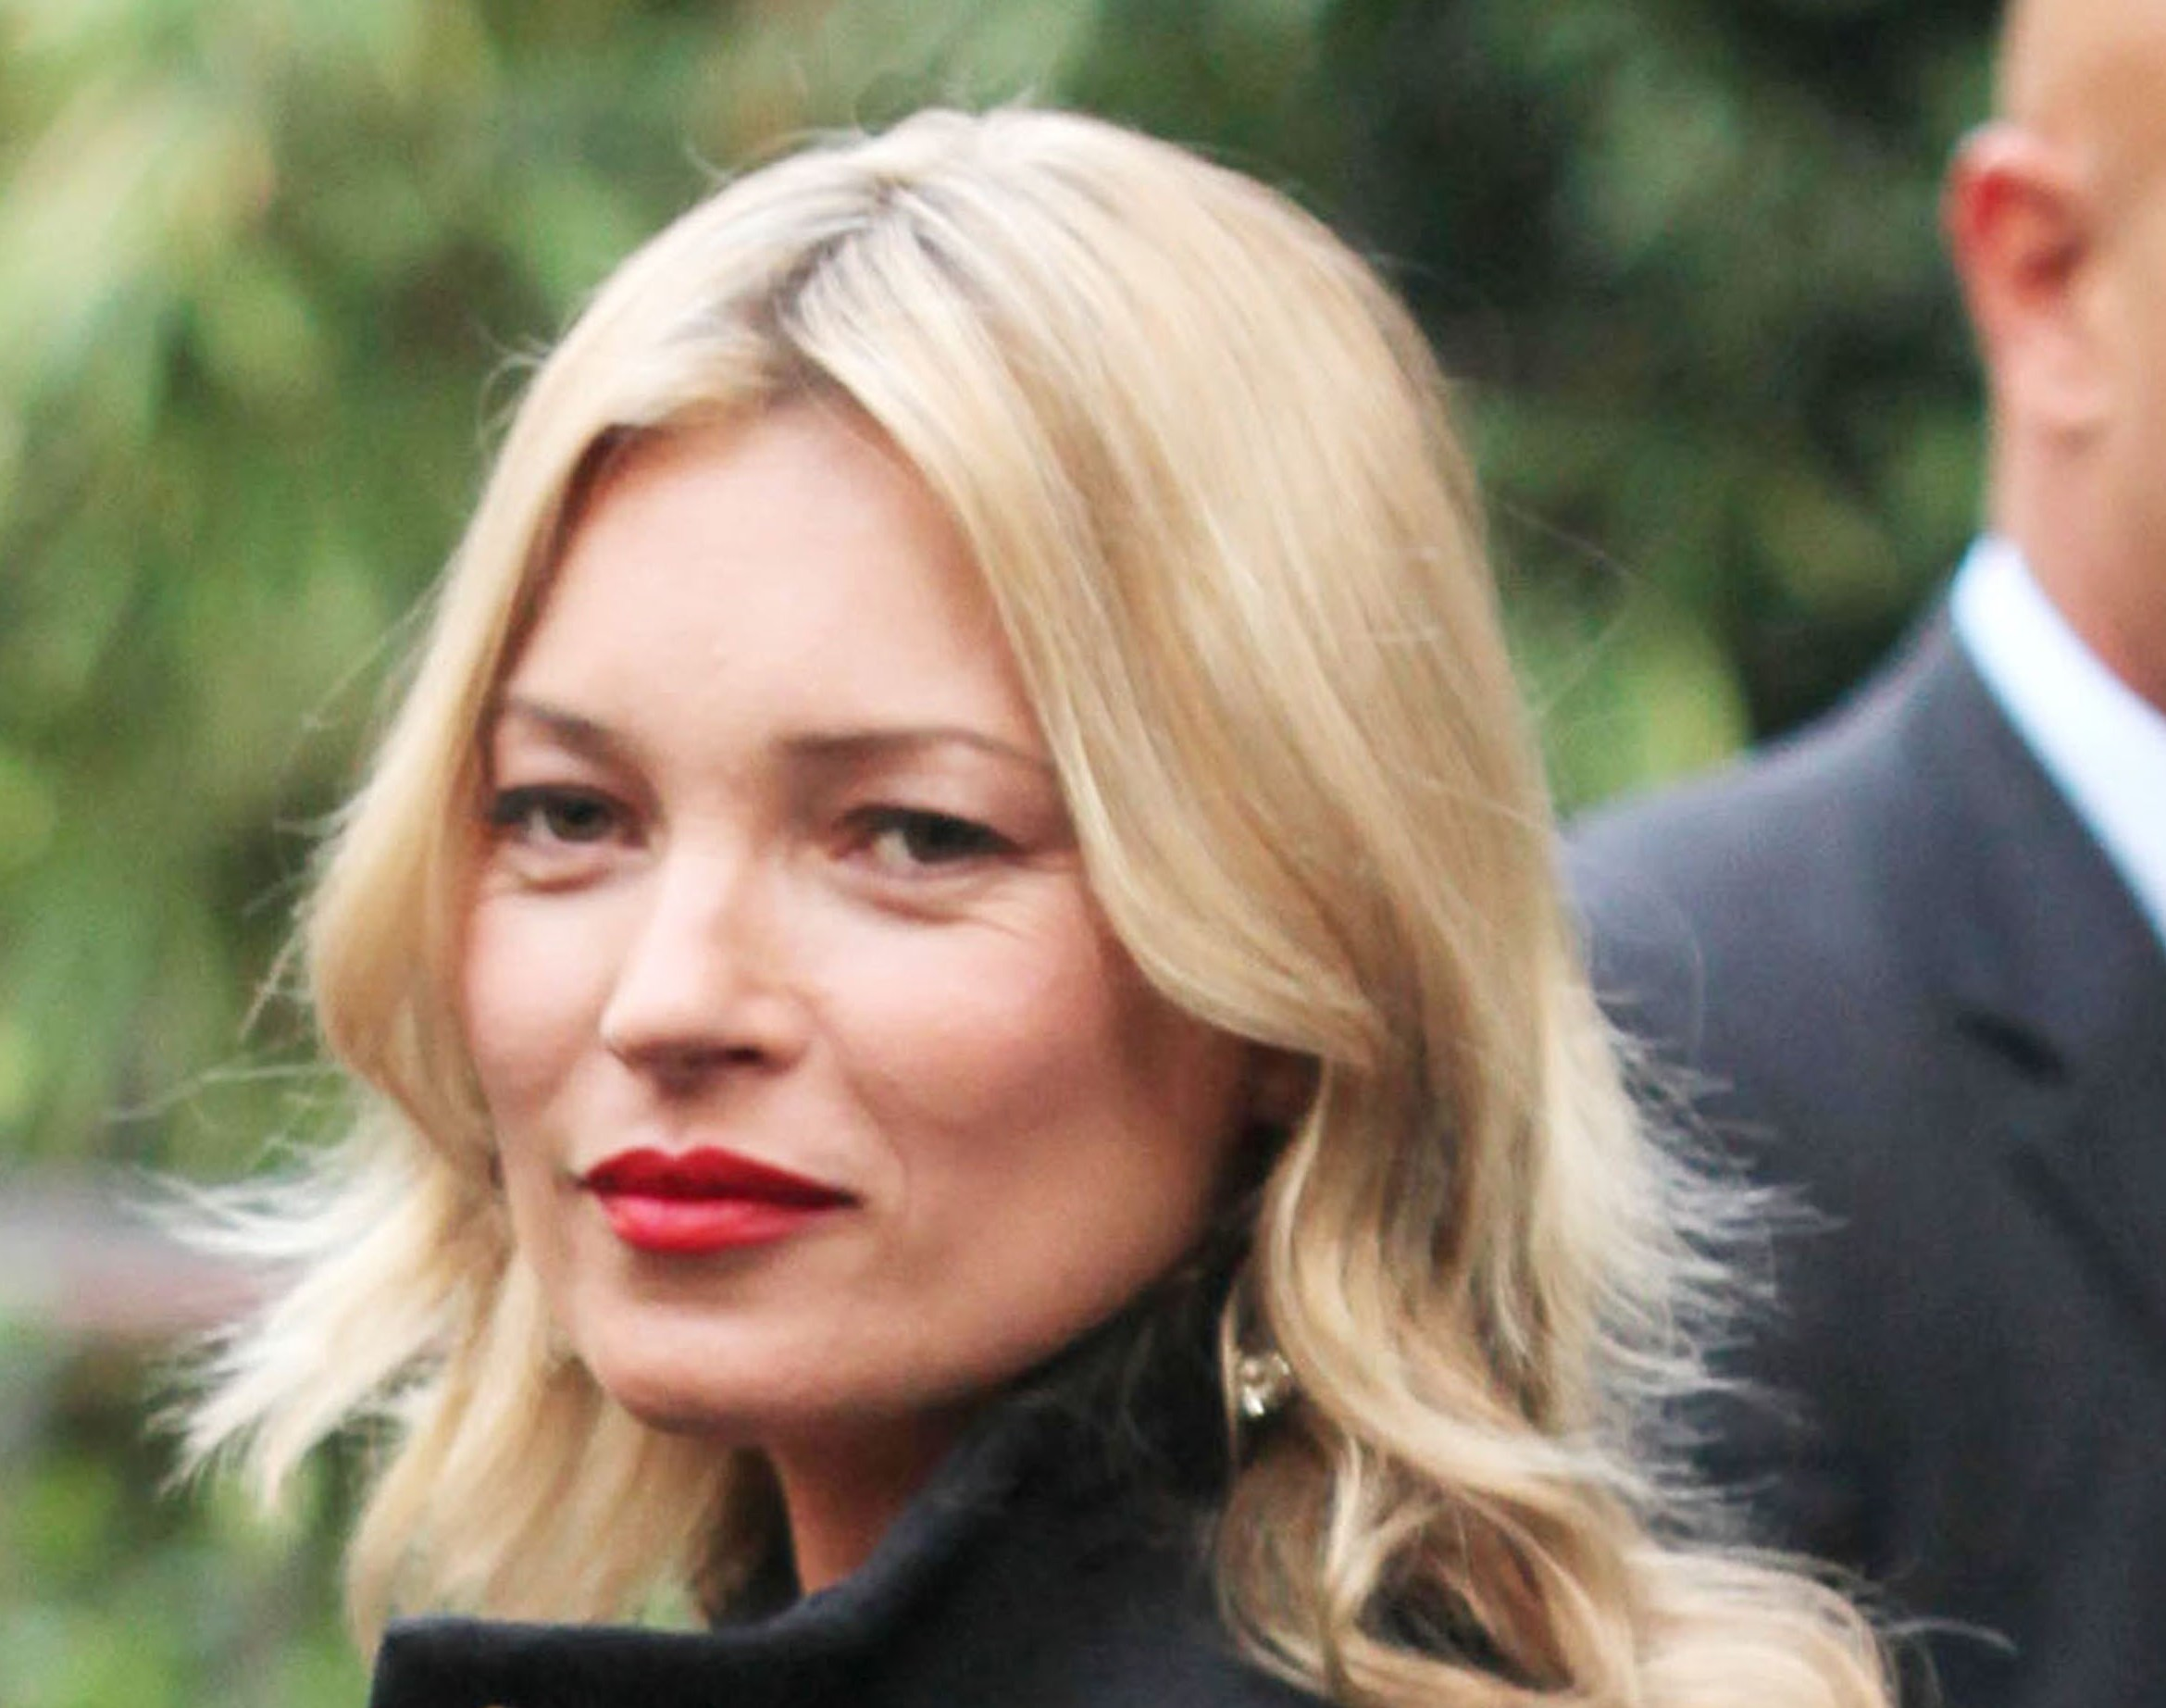 Kate Moss ditches her wild partying lifestyle to go green in the country with hubby Jamie Hince